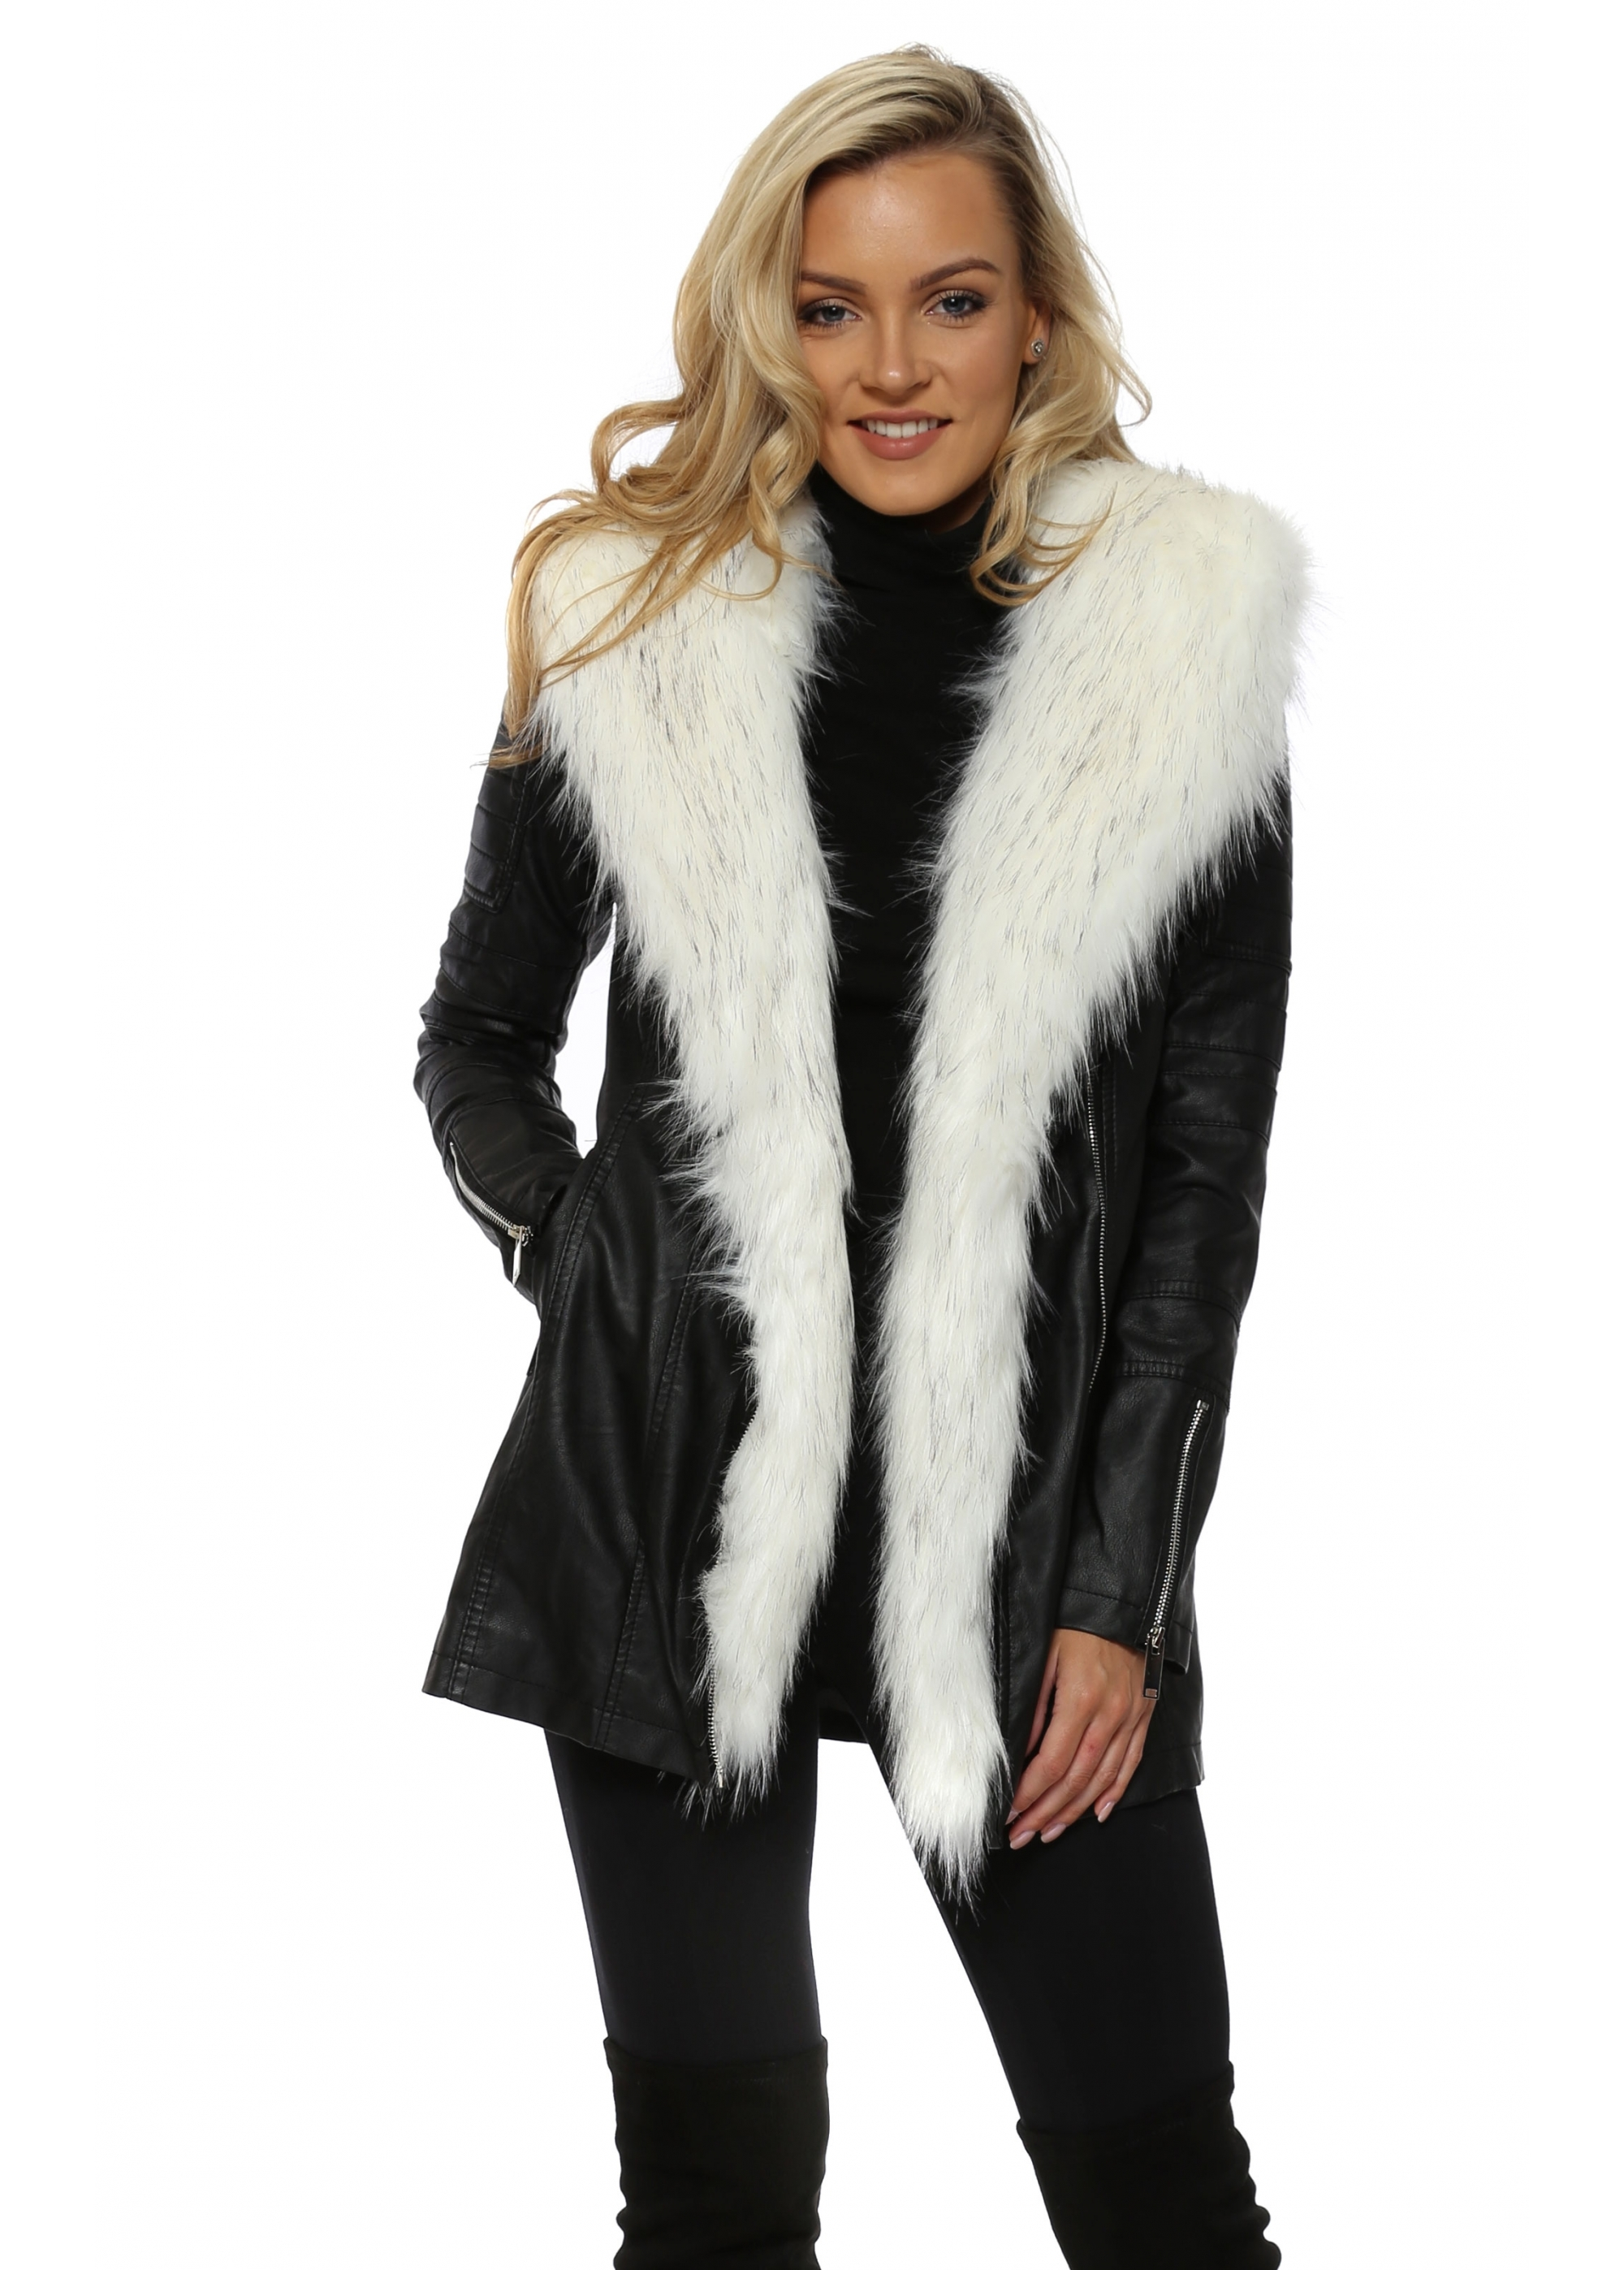 Black Faux Leather Coat With White Fur - Flamant Rose